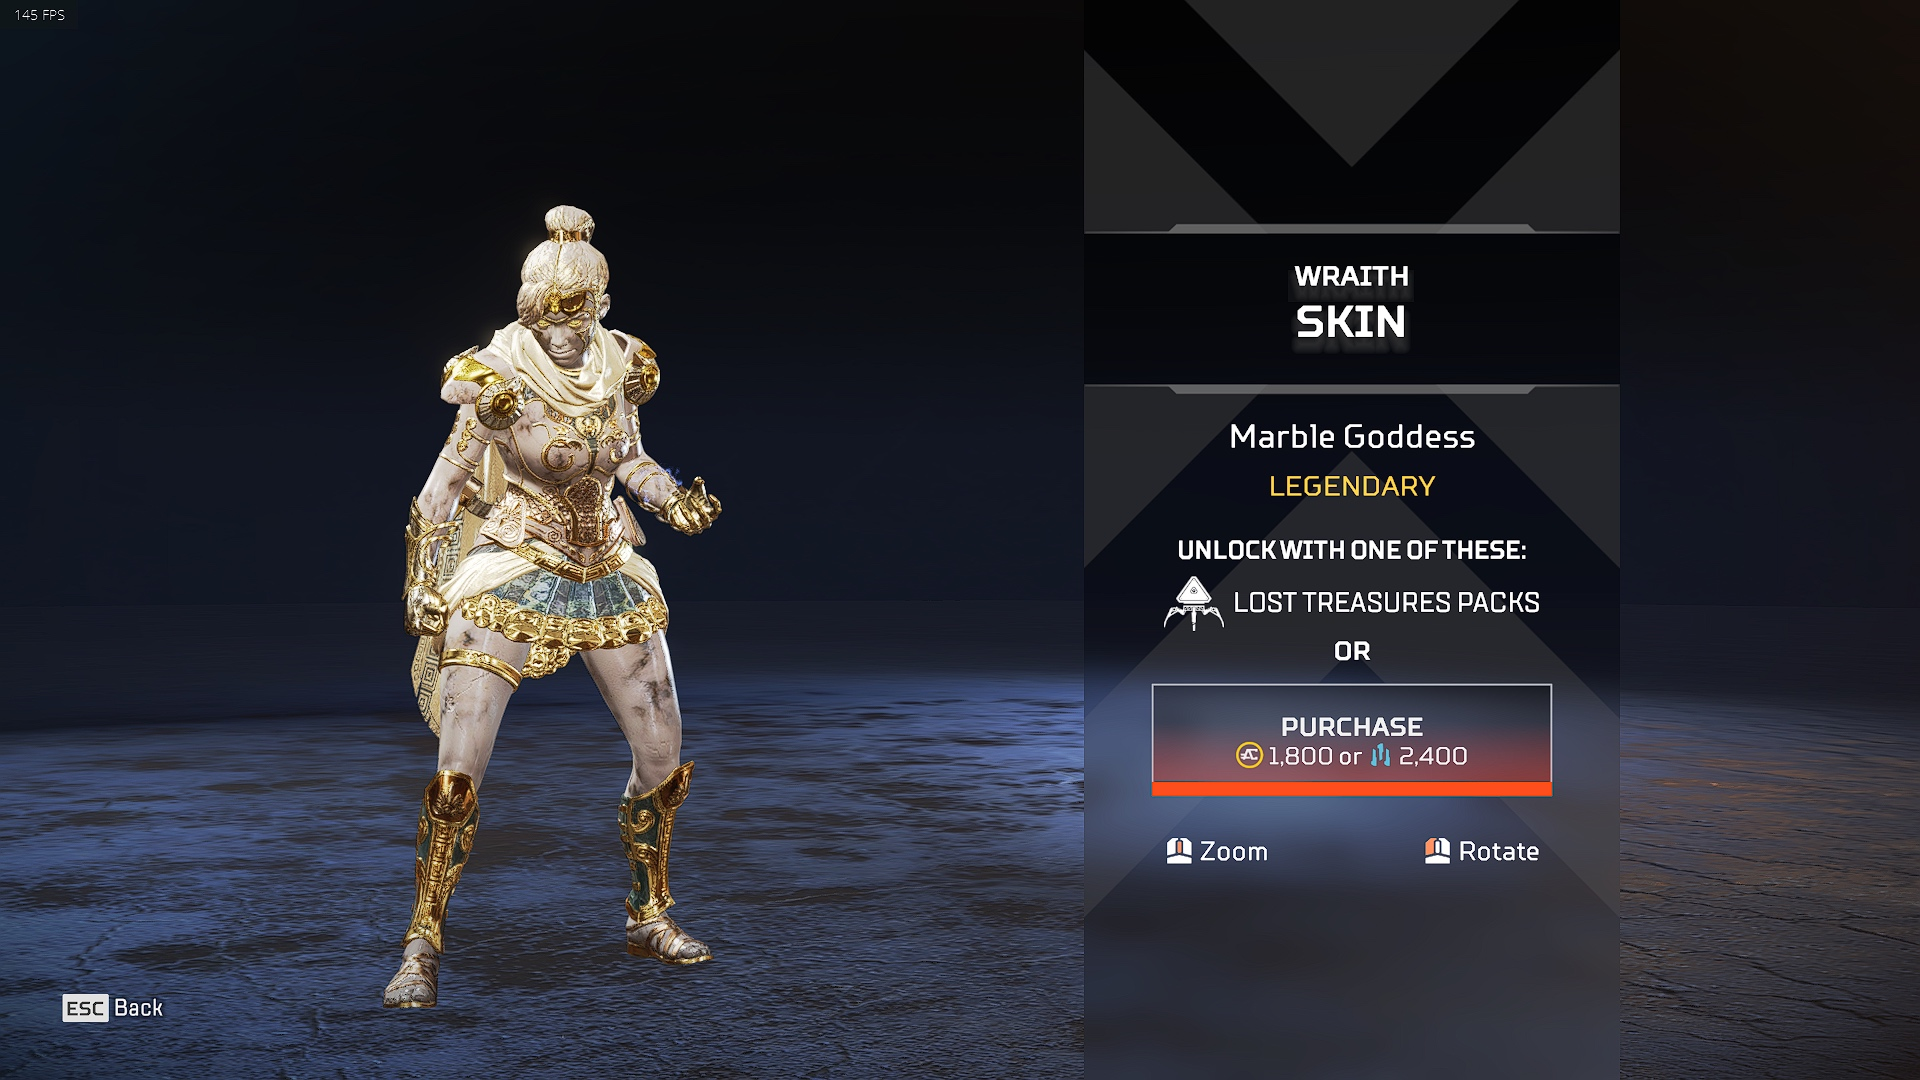 Wraith marble goddess skin in Apex Legends Lost Treasures event